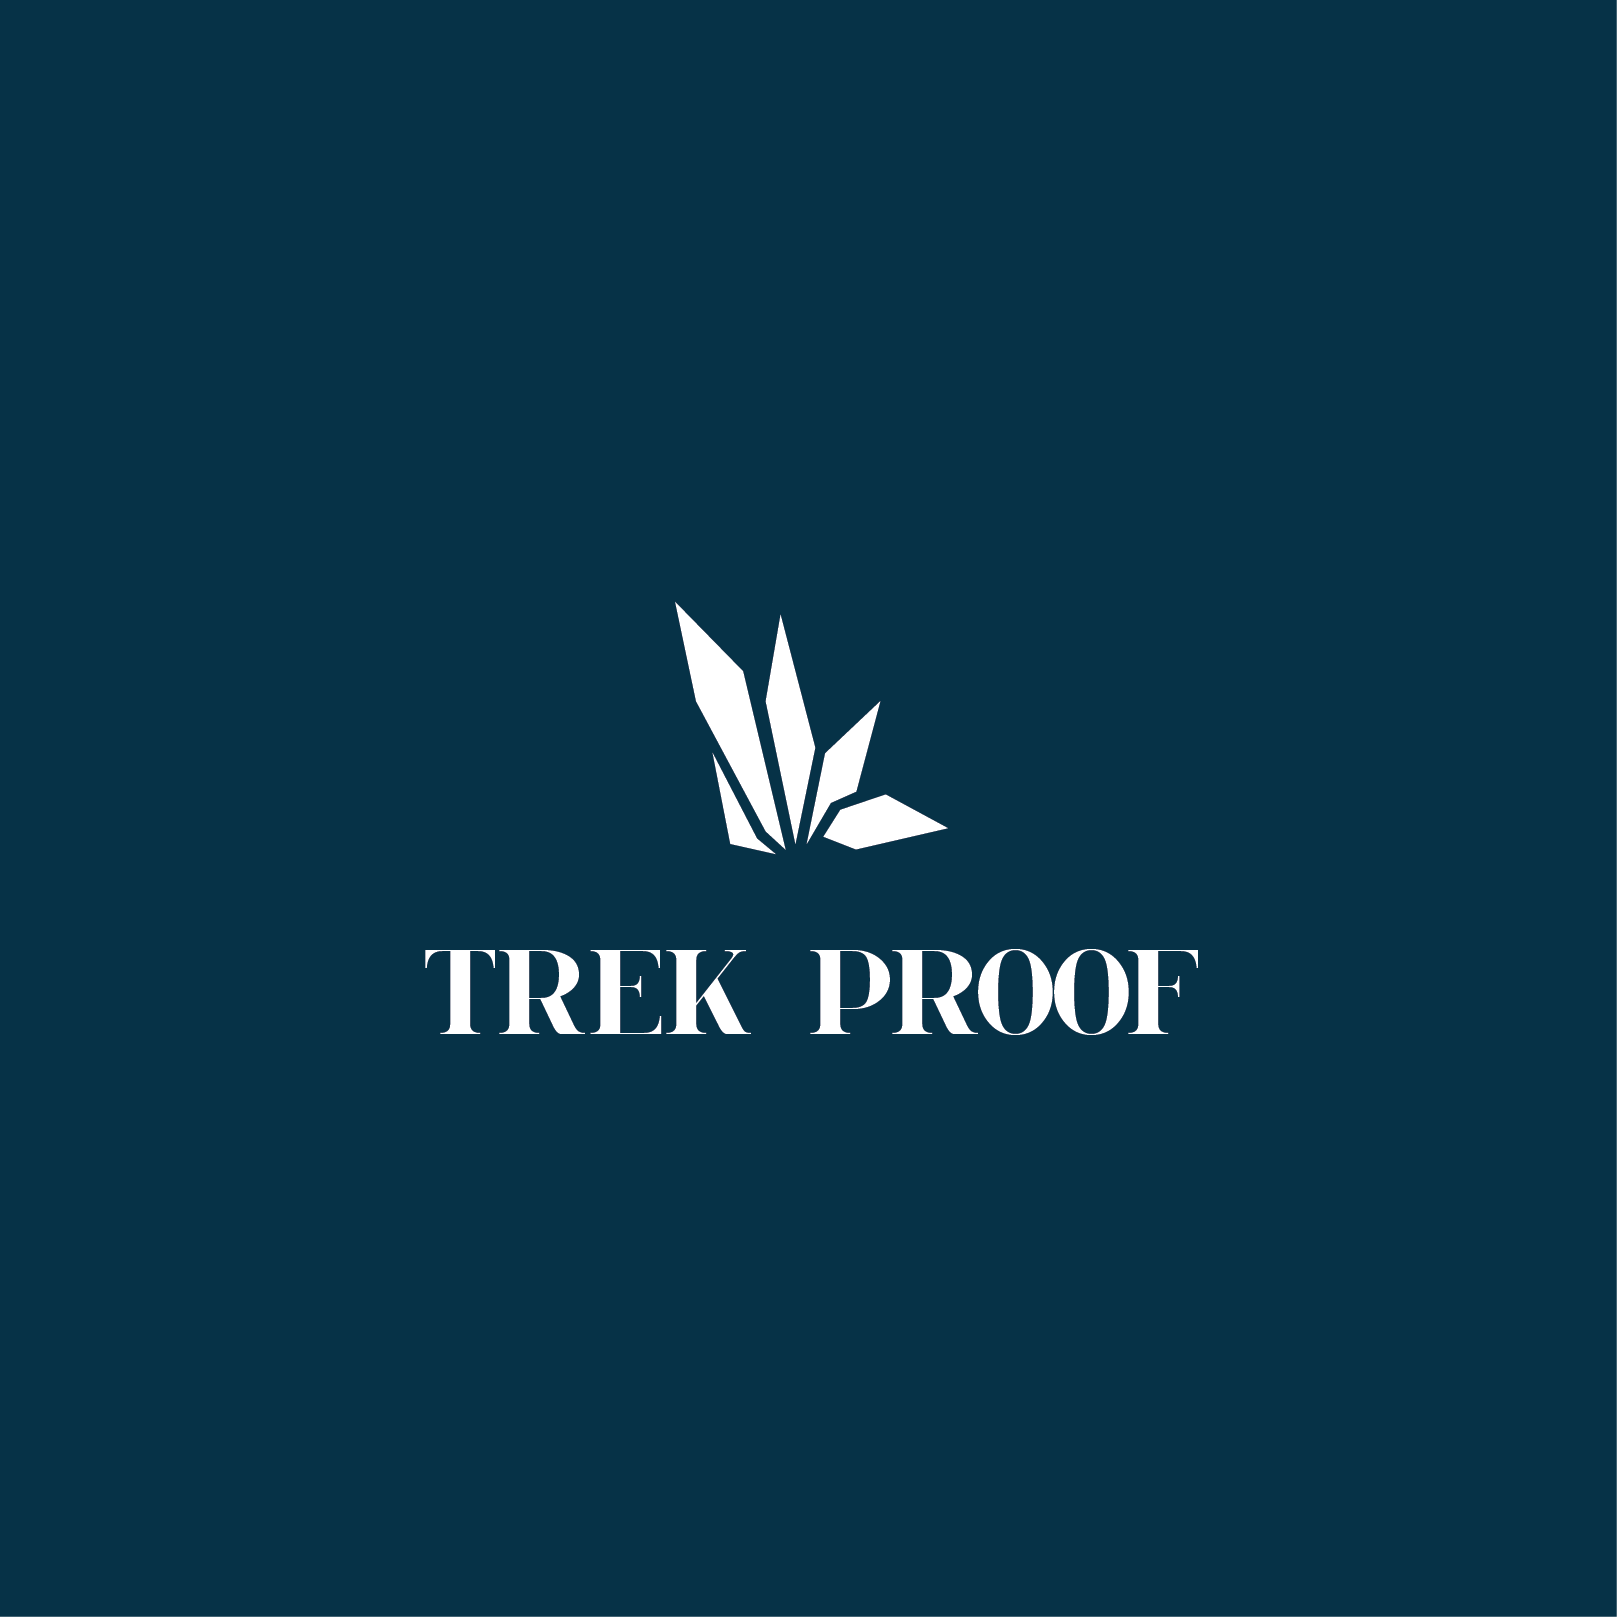 Trek Proof